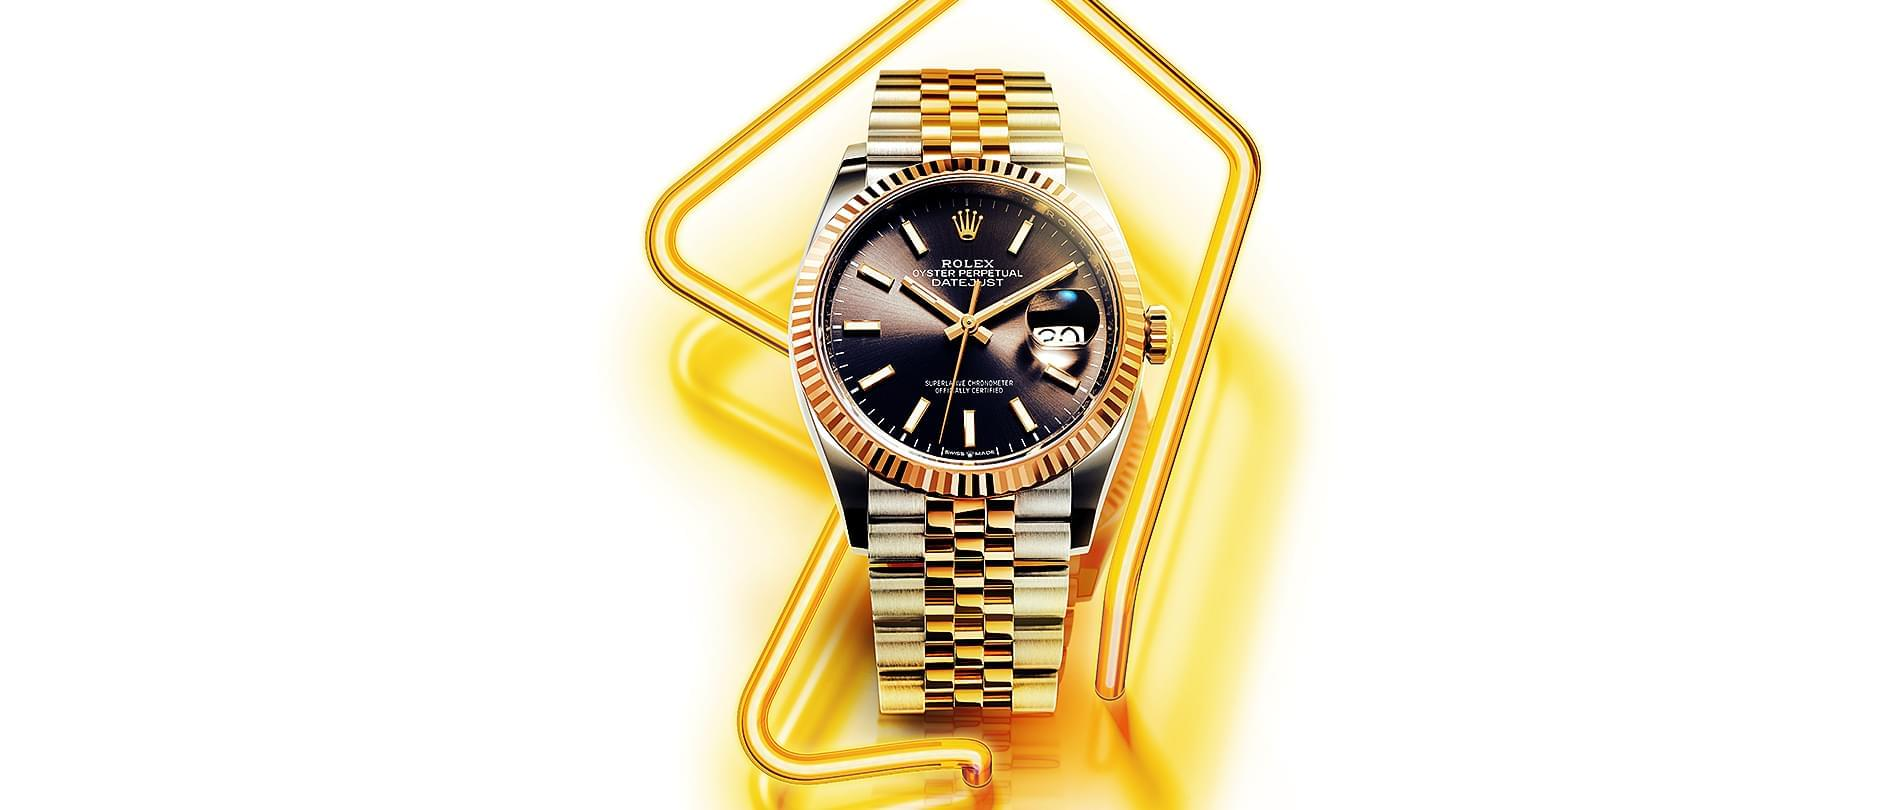 Men's Health Magazine Cover - Rolex Watch